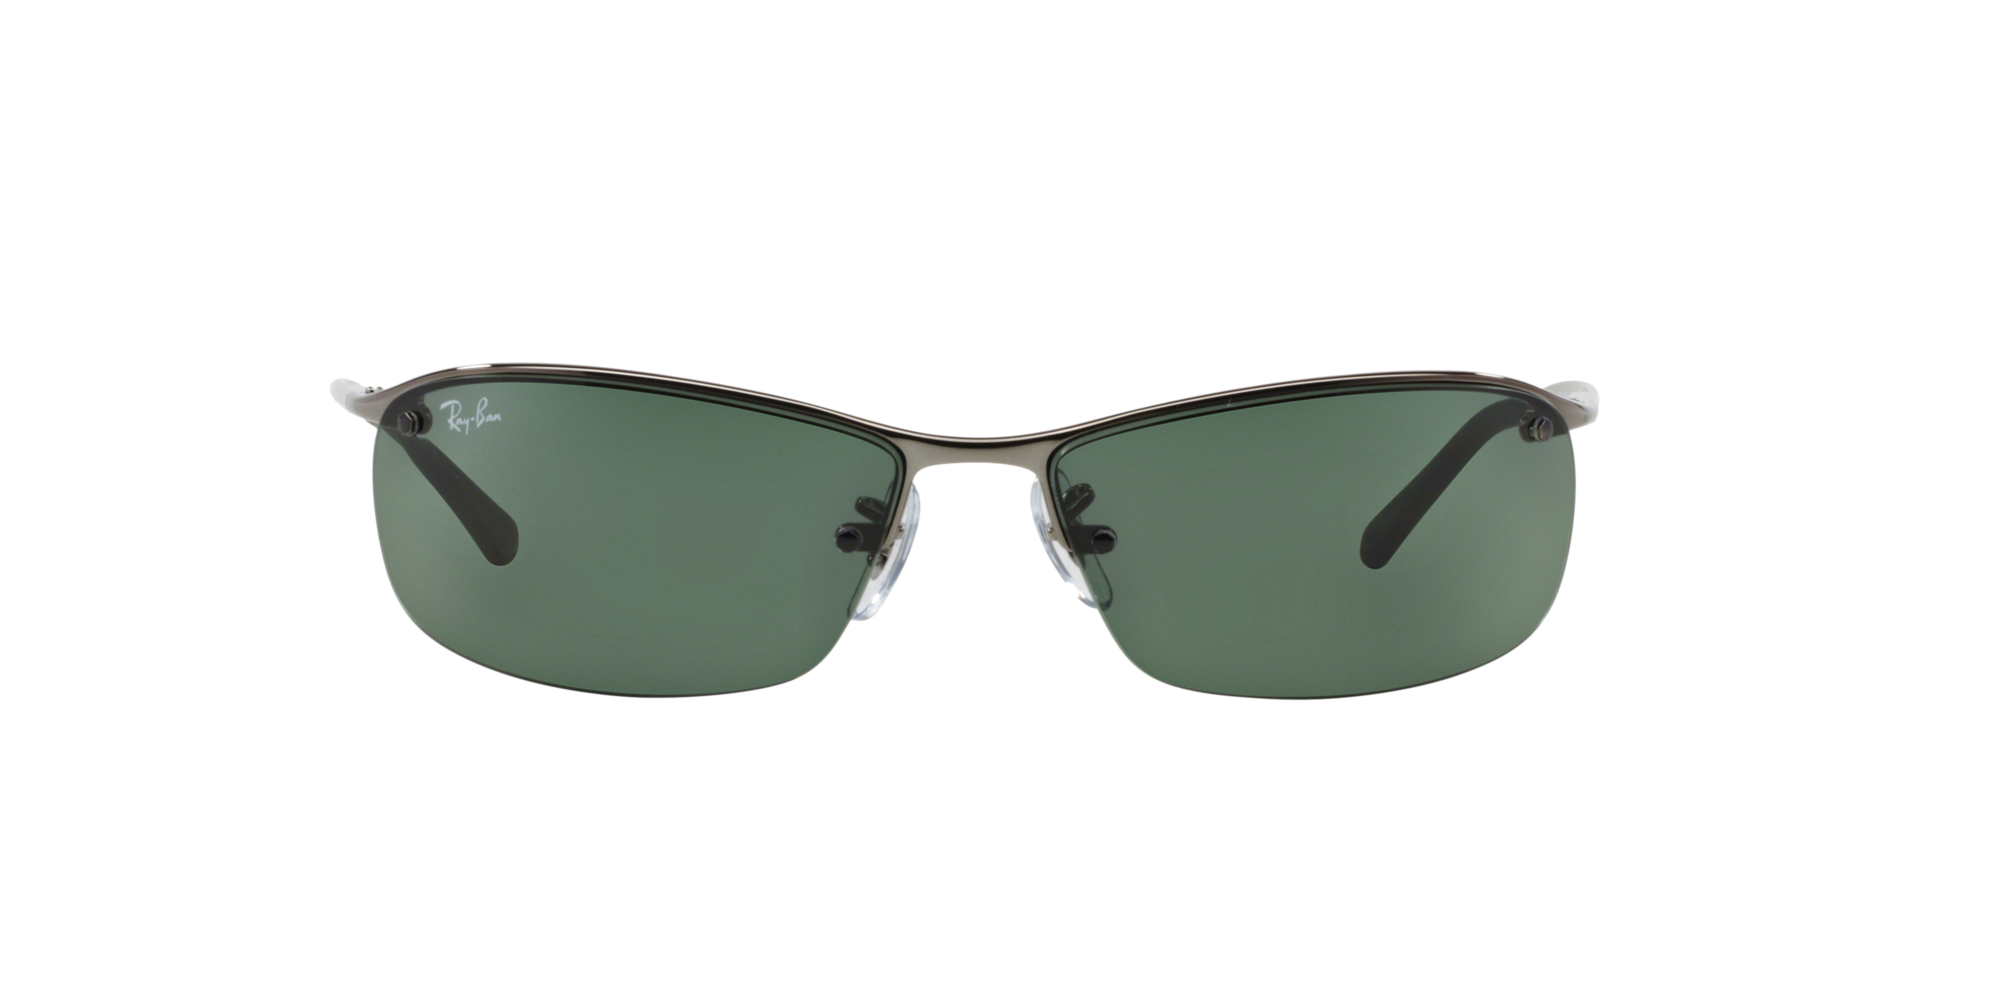 8c3dcb1bcd6 gafas de sol RAY-BAN RB 3183 004 71. 360° Product View 360° Product View ...